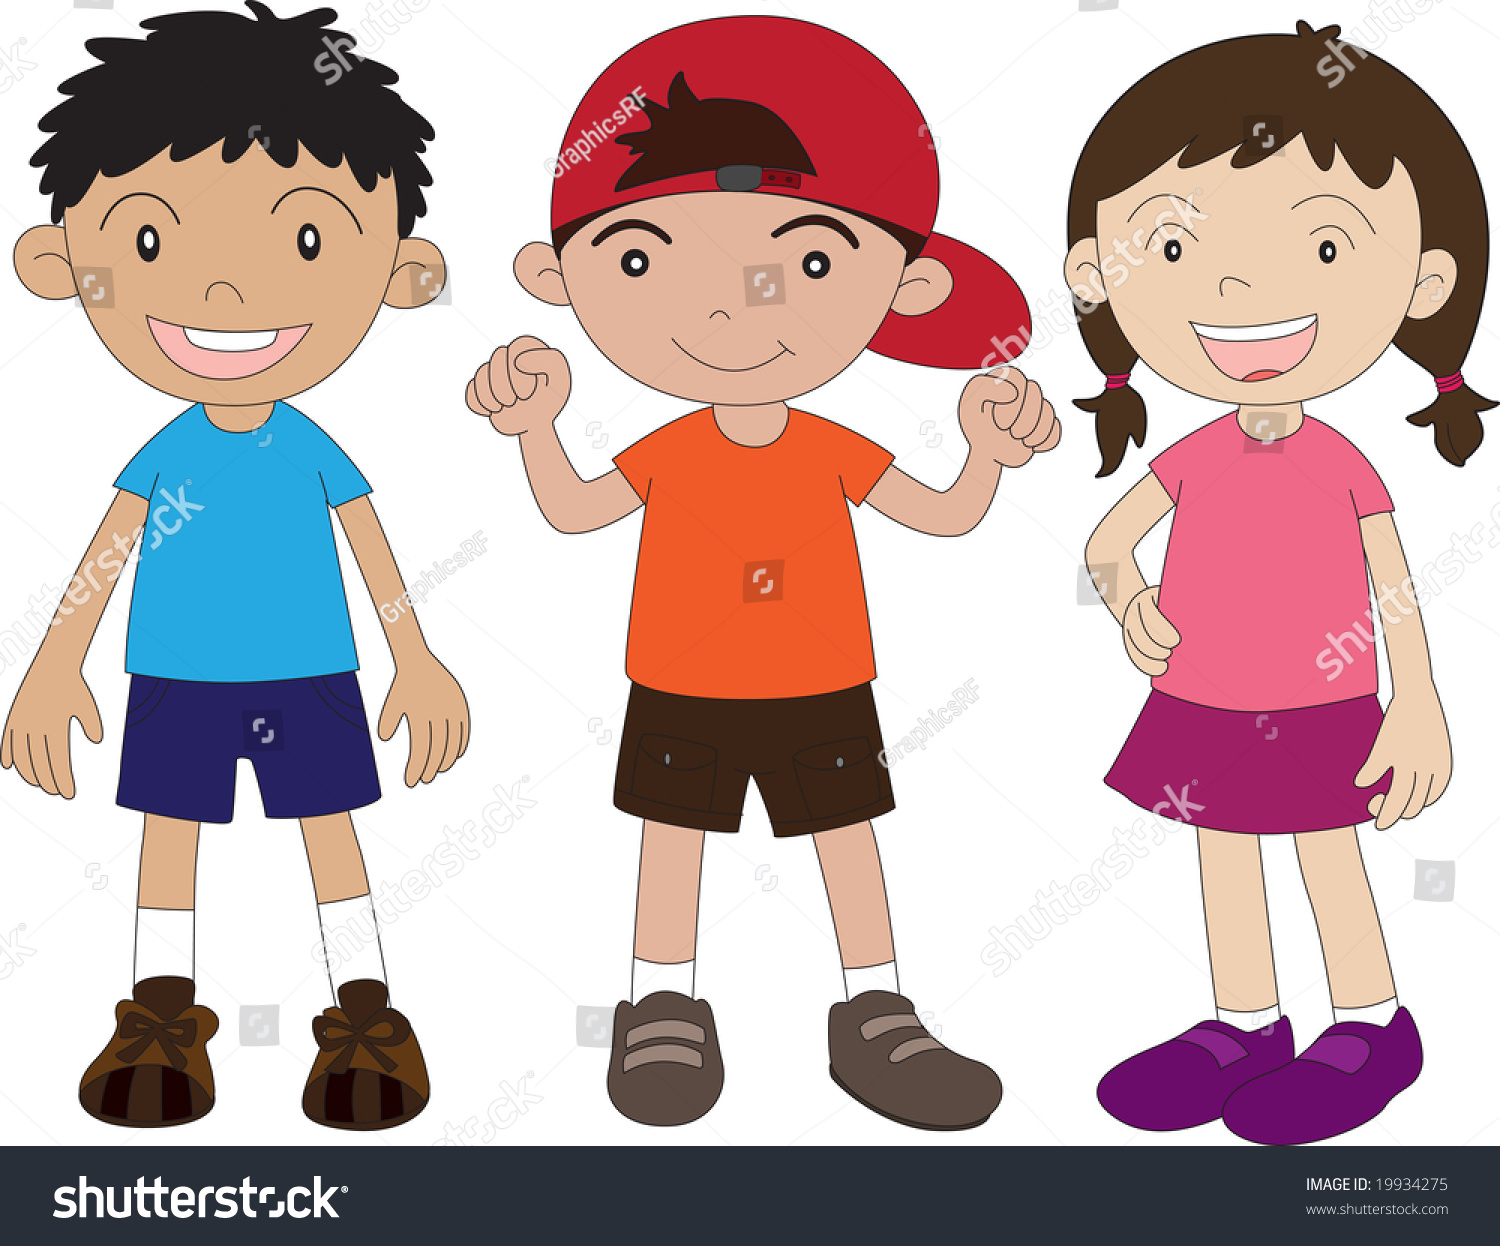 2 Boys And A Girl Clipart.